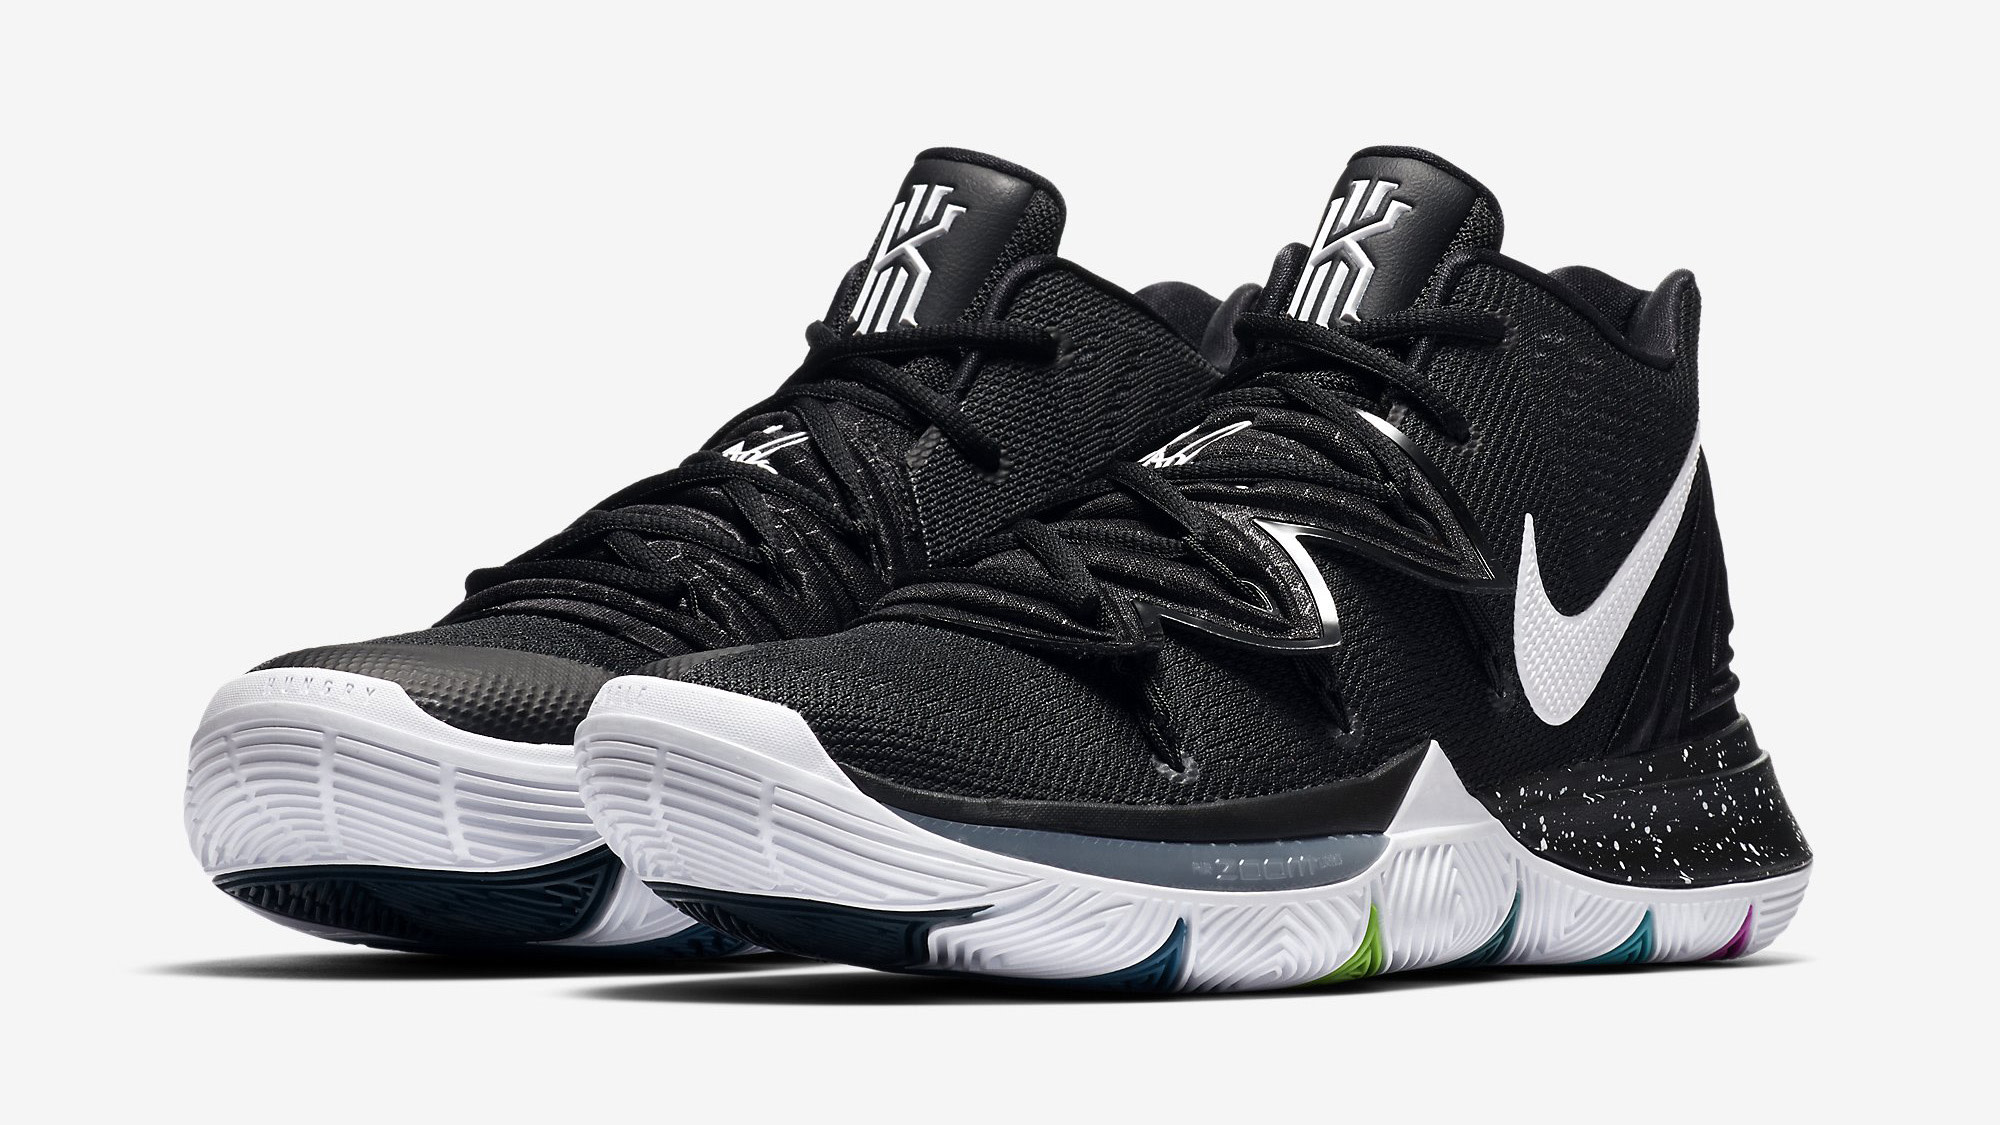 226c77a6edcc Nike Kyrie 5 Performance Review